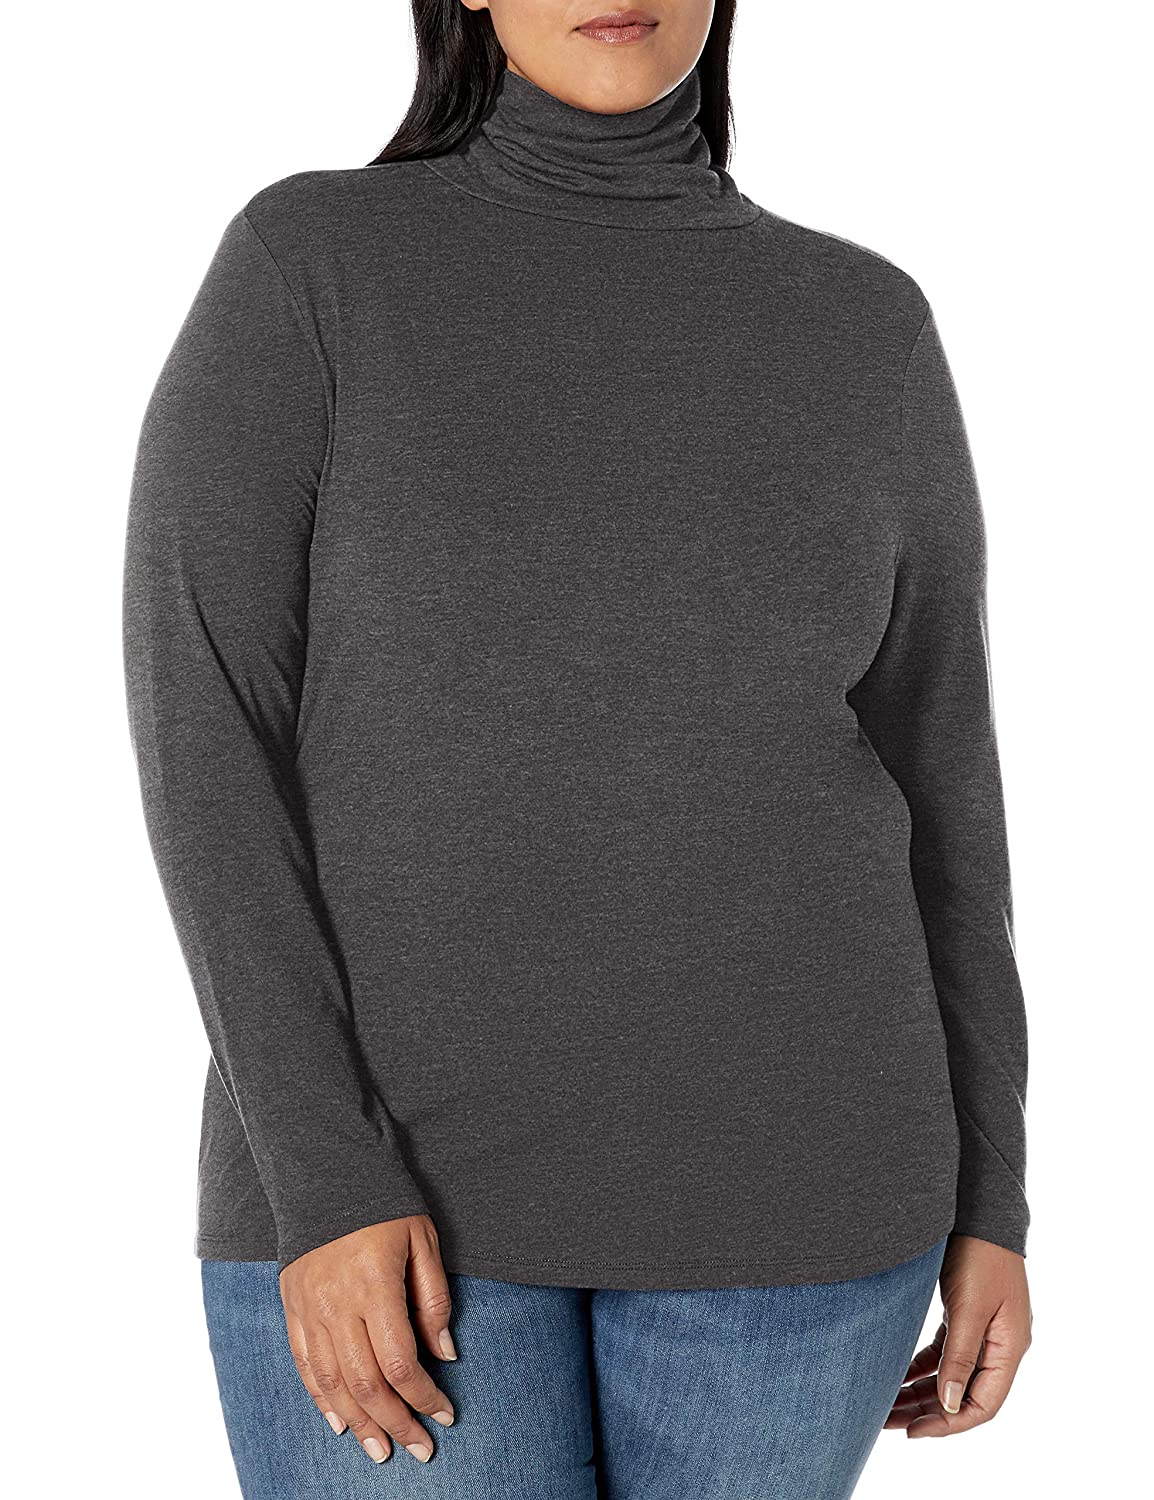 2X Charcoal Heather Essentials Womens Plus Size Long-Sleeve Turtleneck